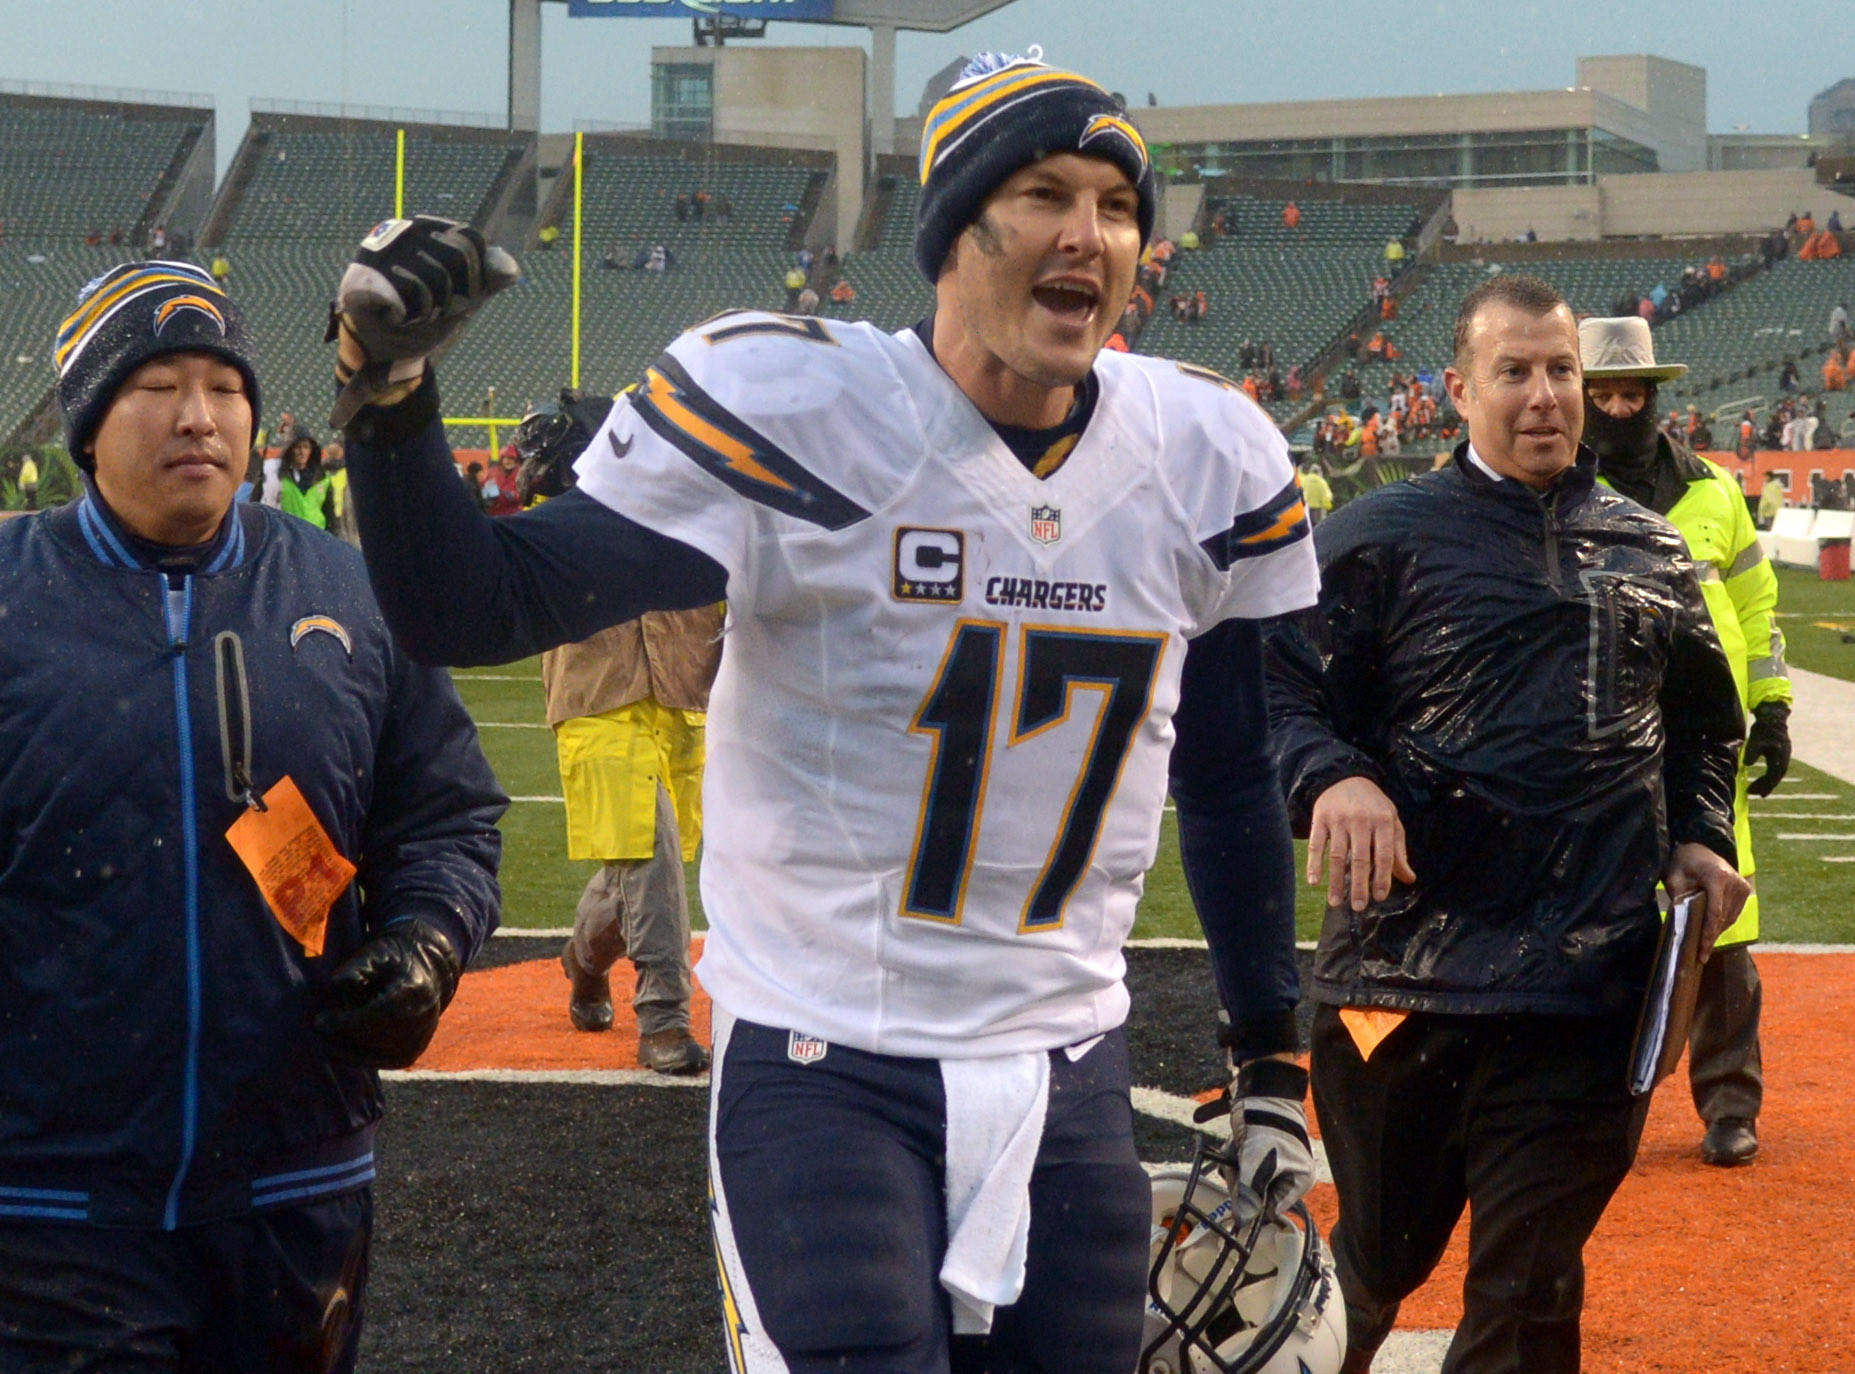 Chargers quarterback Philip Rivers celebrates at the end of the 2013 AFC wild card playoff game against the Bengals at Paul Brown Stadium.